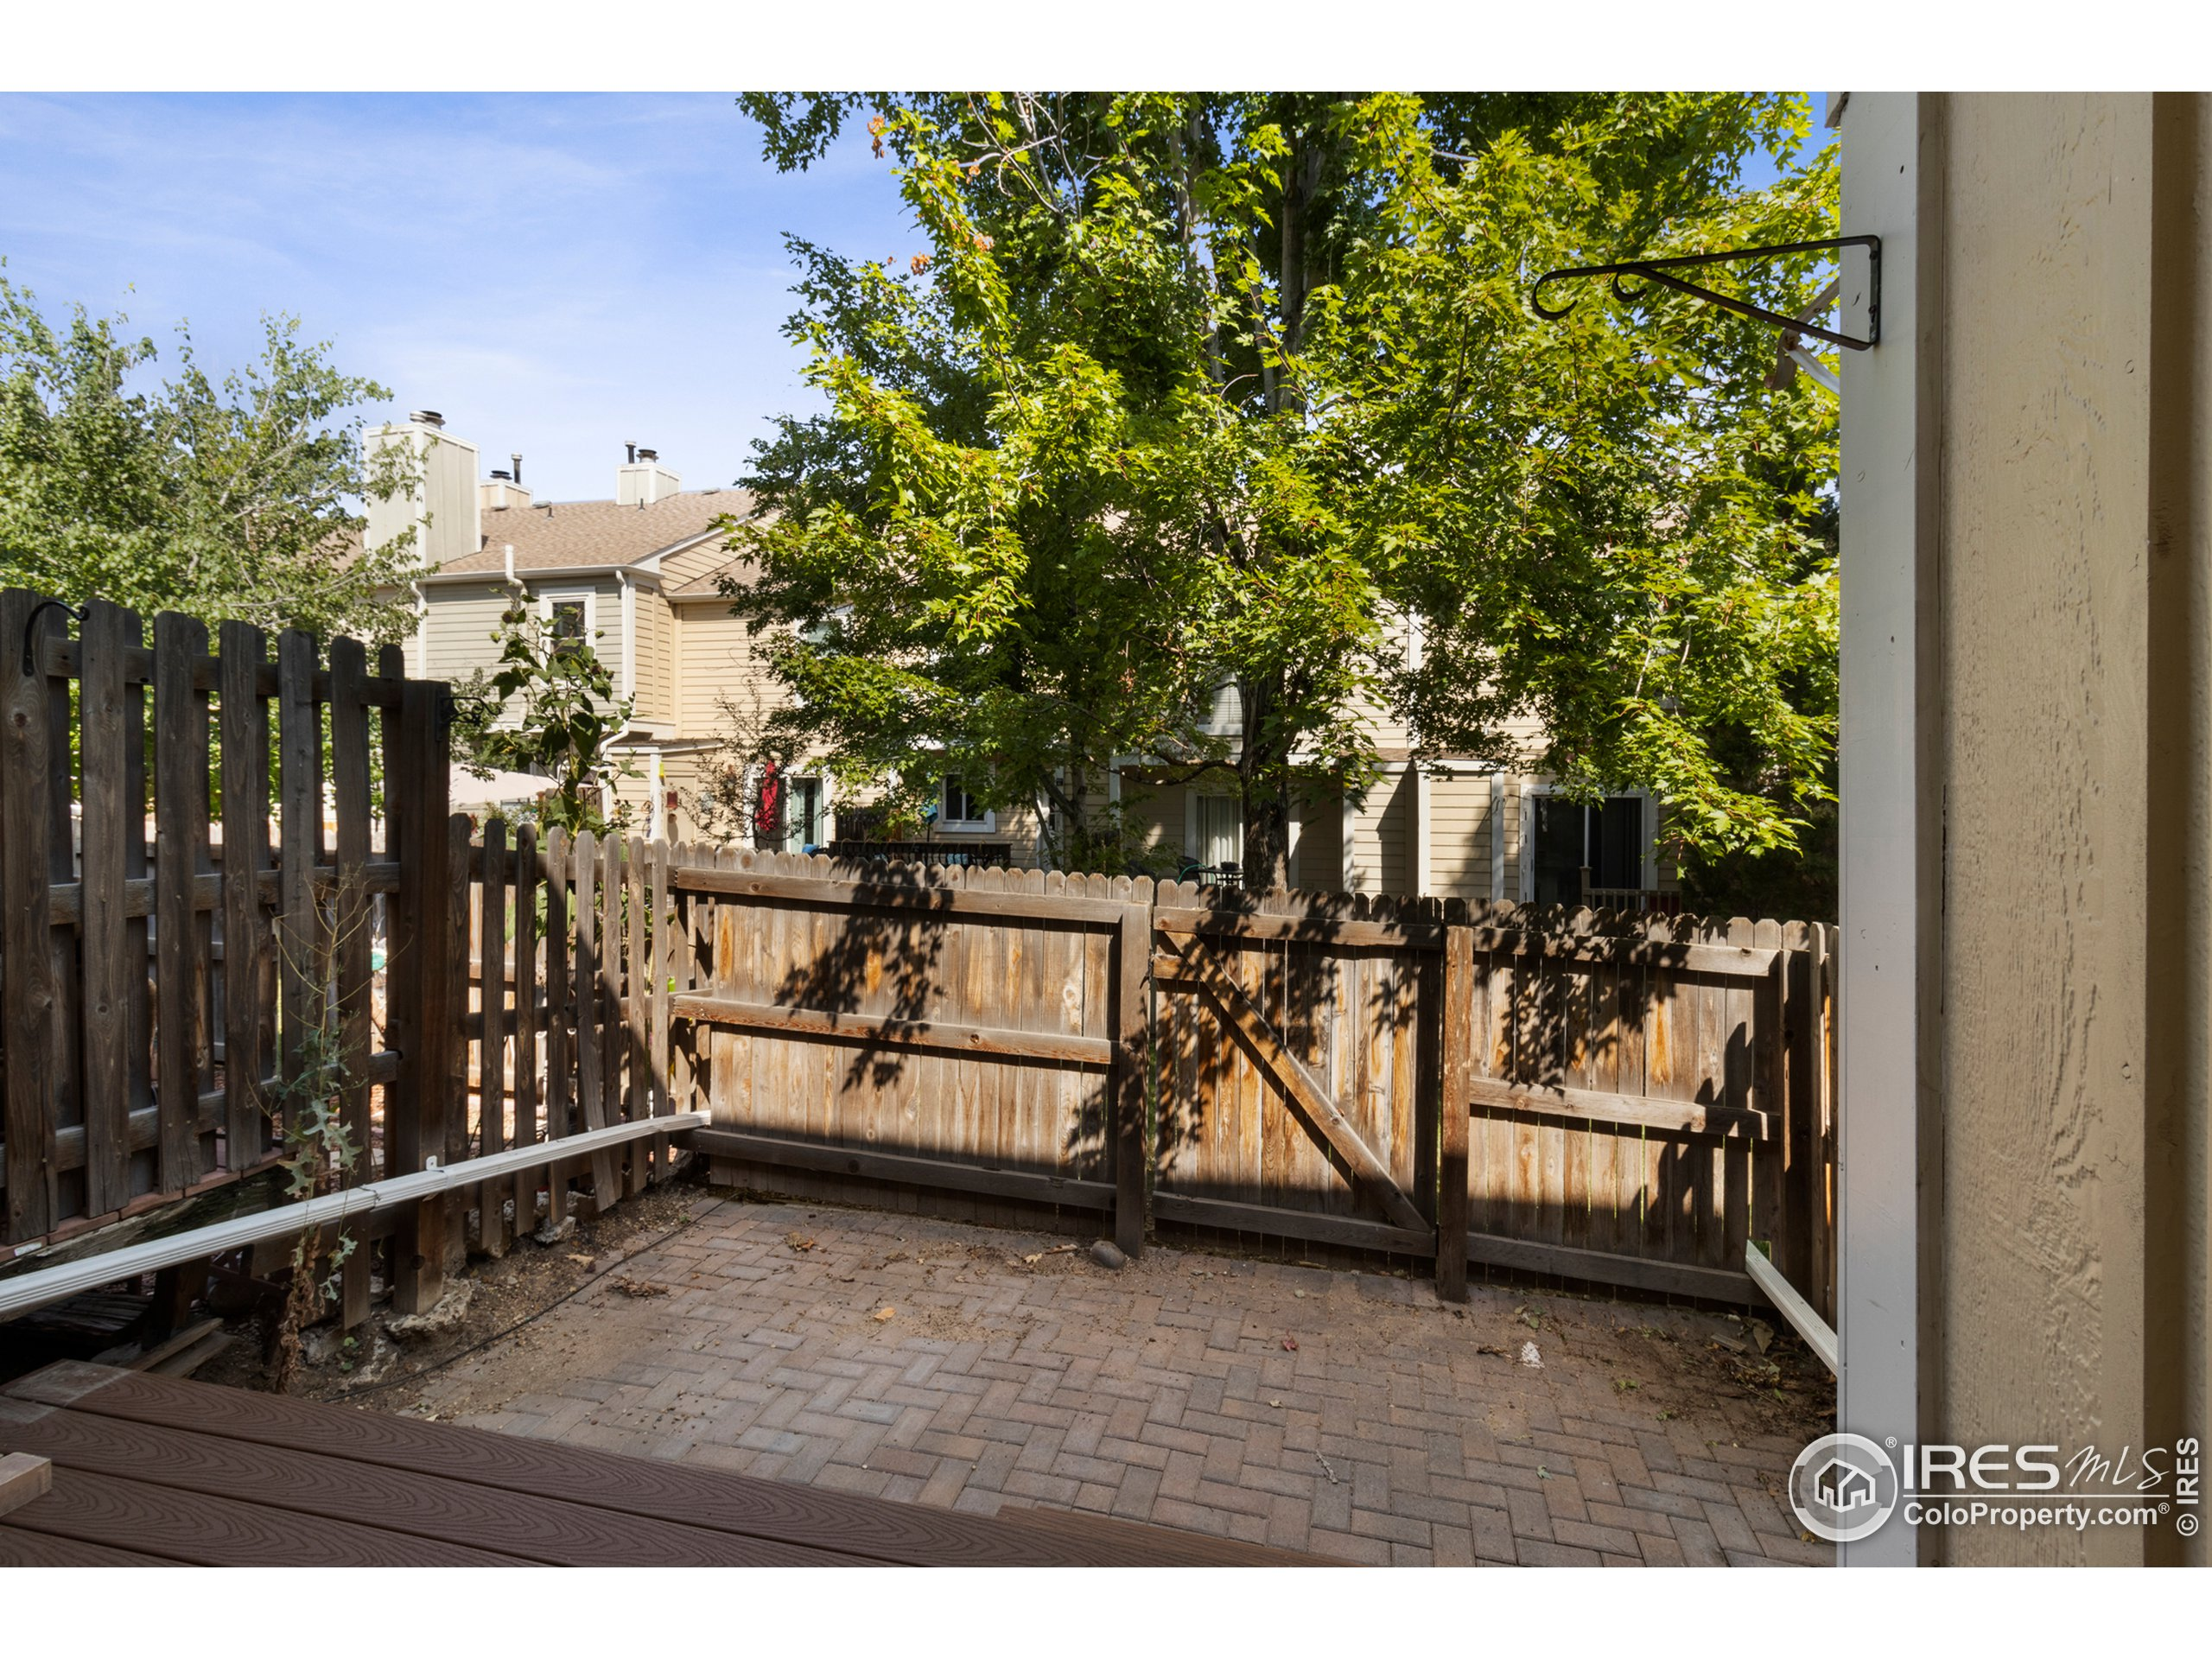 Private, fenced patio space in the back